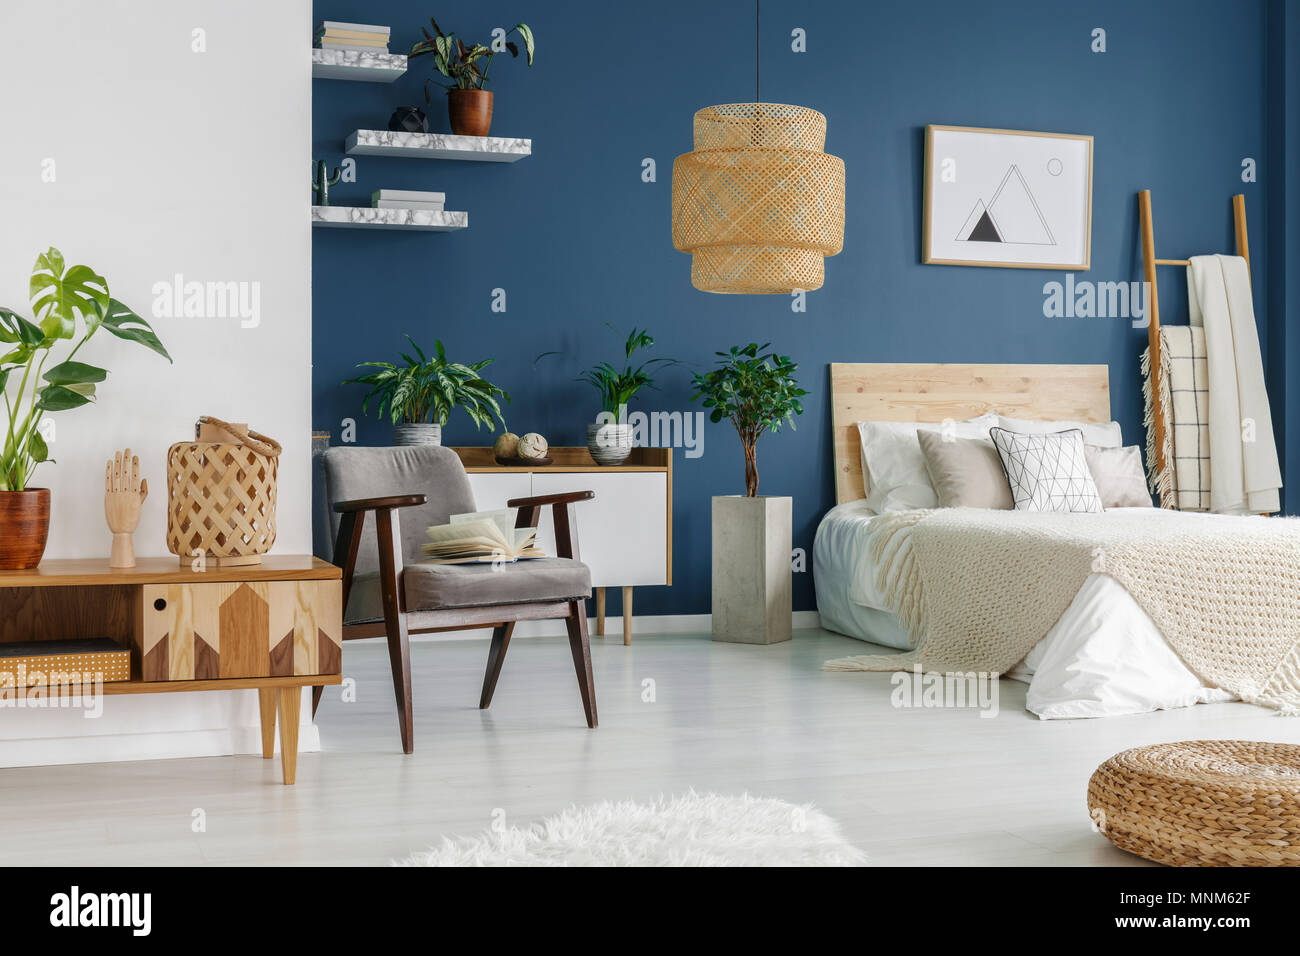 Wooden Furniture And Marble Shelves In Bedroom Interior With Green Plants Double Bed And Grey Armchair Stock Photo Alamy